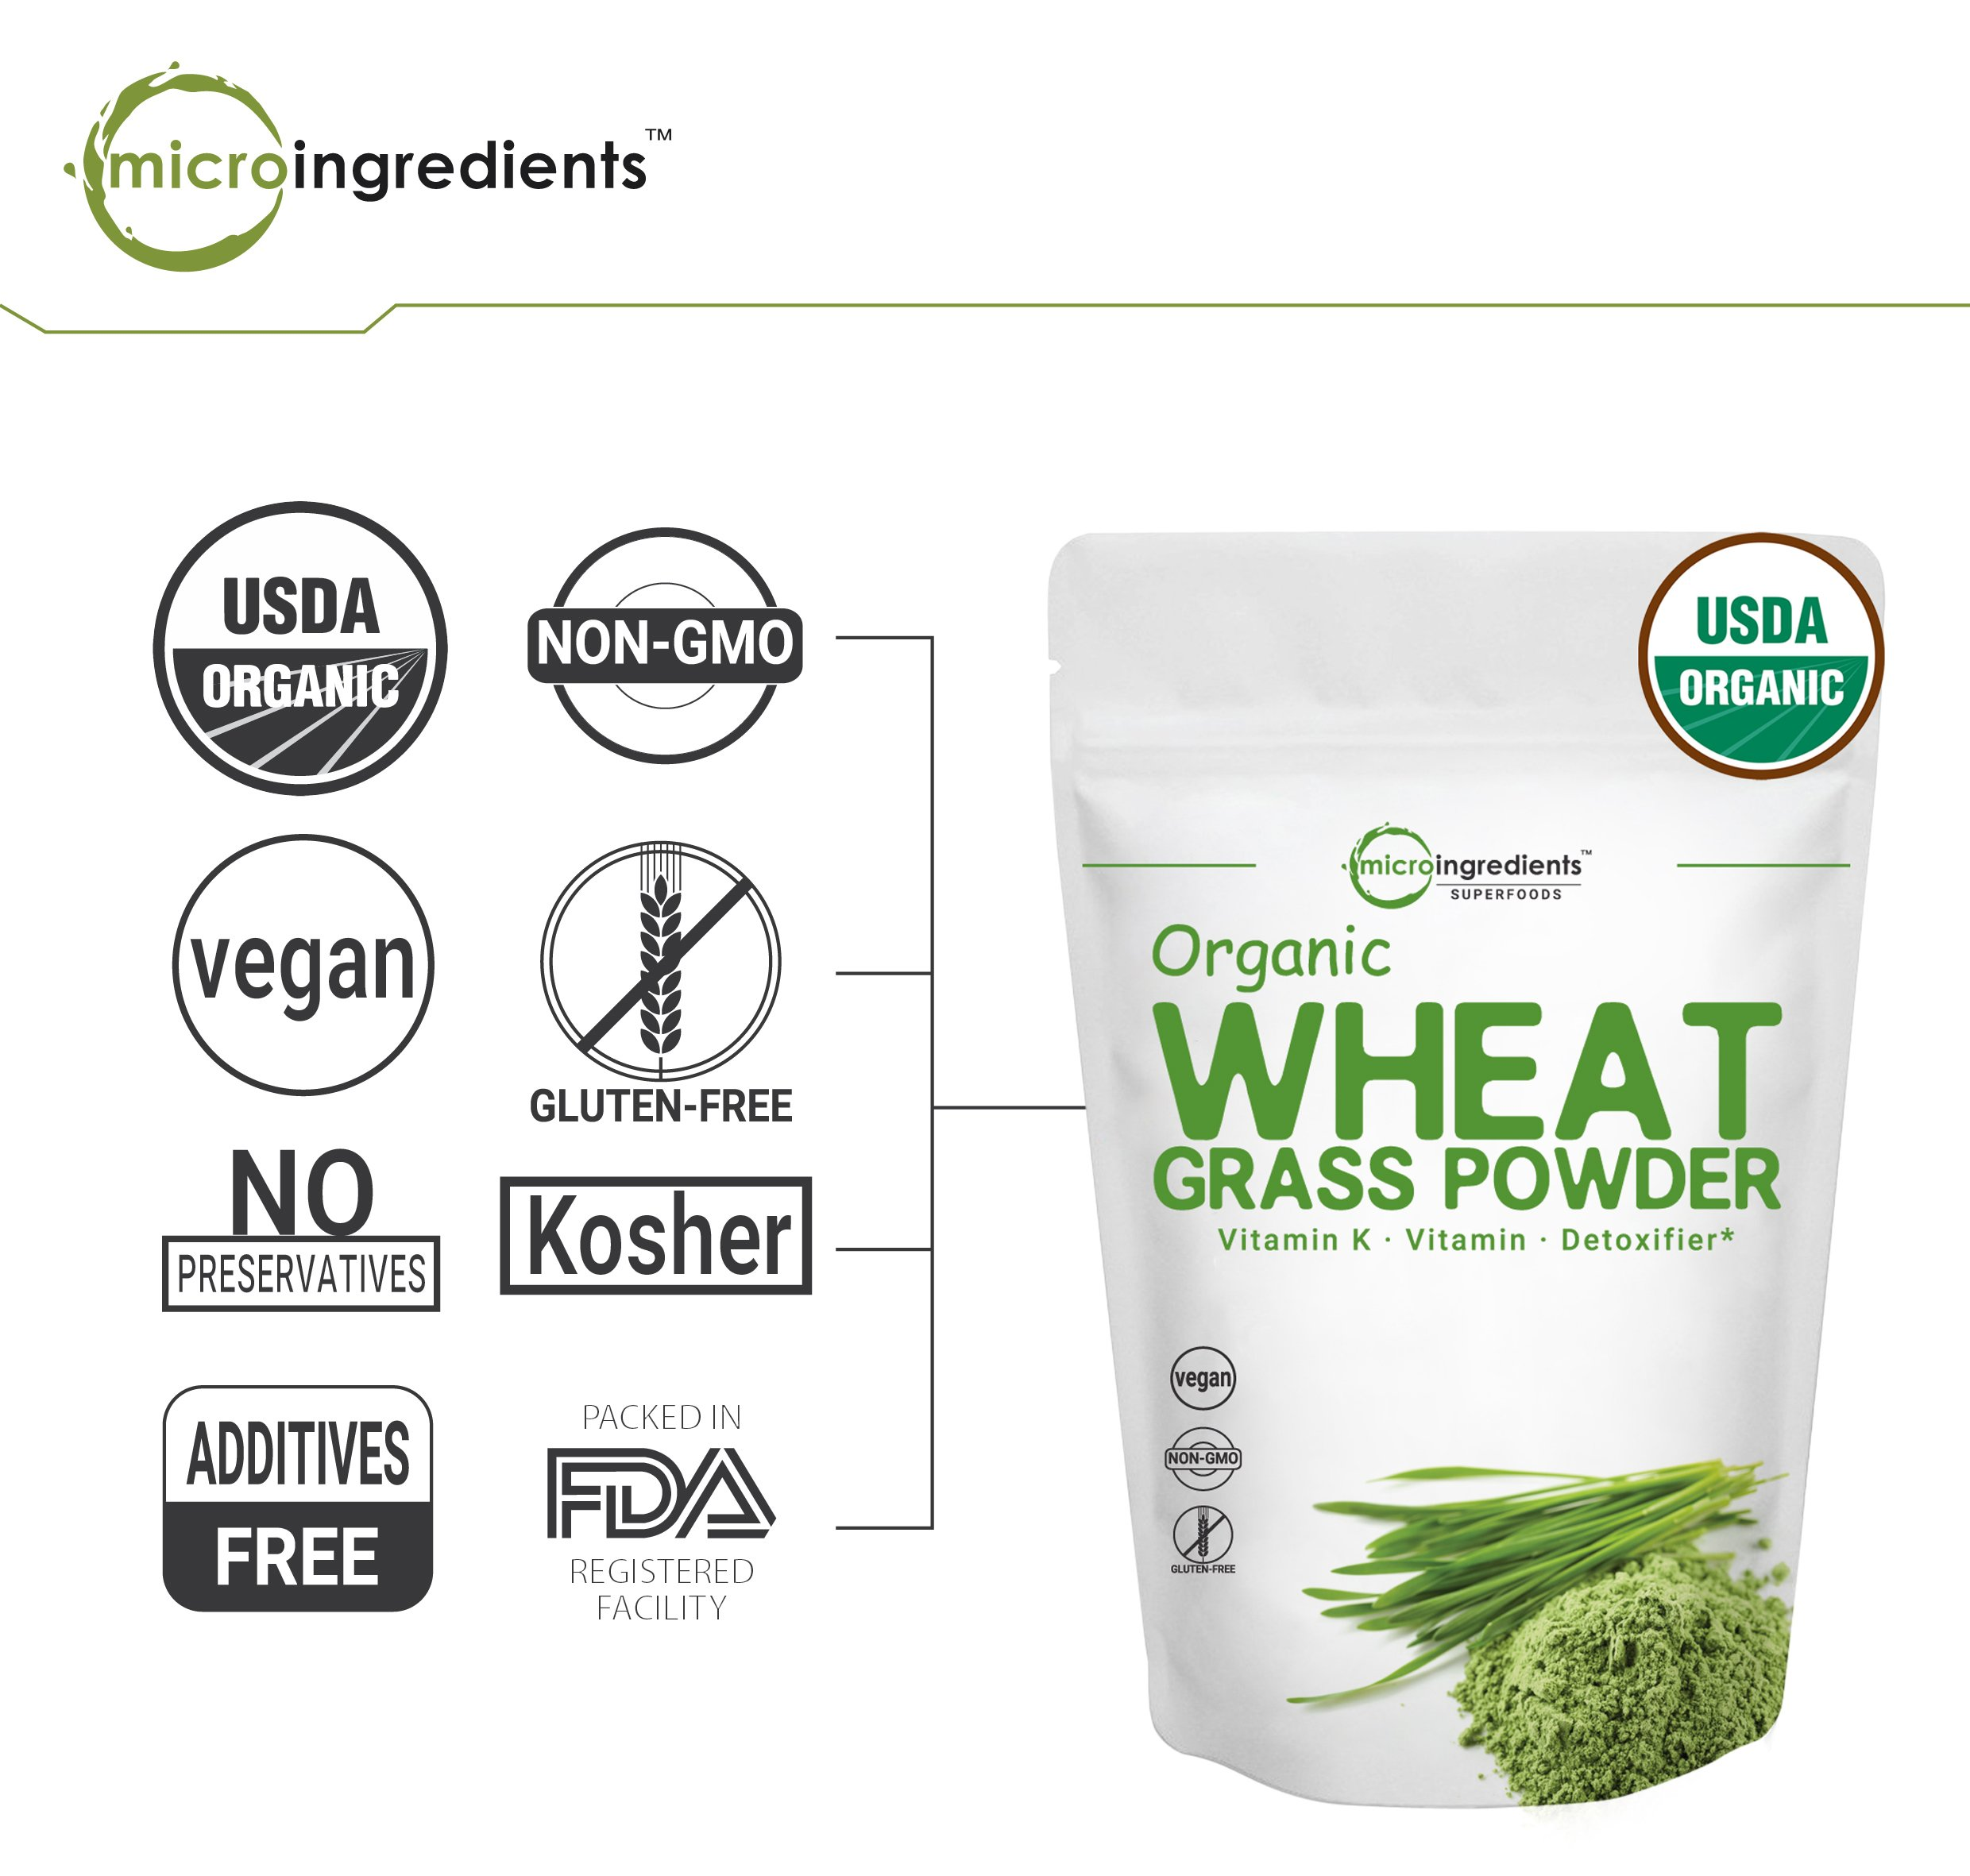 Sustainably US Grown, Organic Wheat Grass Powder, 150 Serving (1 Pound), Rich Fiber, Chlorophyll, Antioxidants, Essential Amino Acids, Fatty Acids, Minerals & Vitamins. Best Vegan & Non-GMO SuperFoods by Micro Ingredients (Image #5)